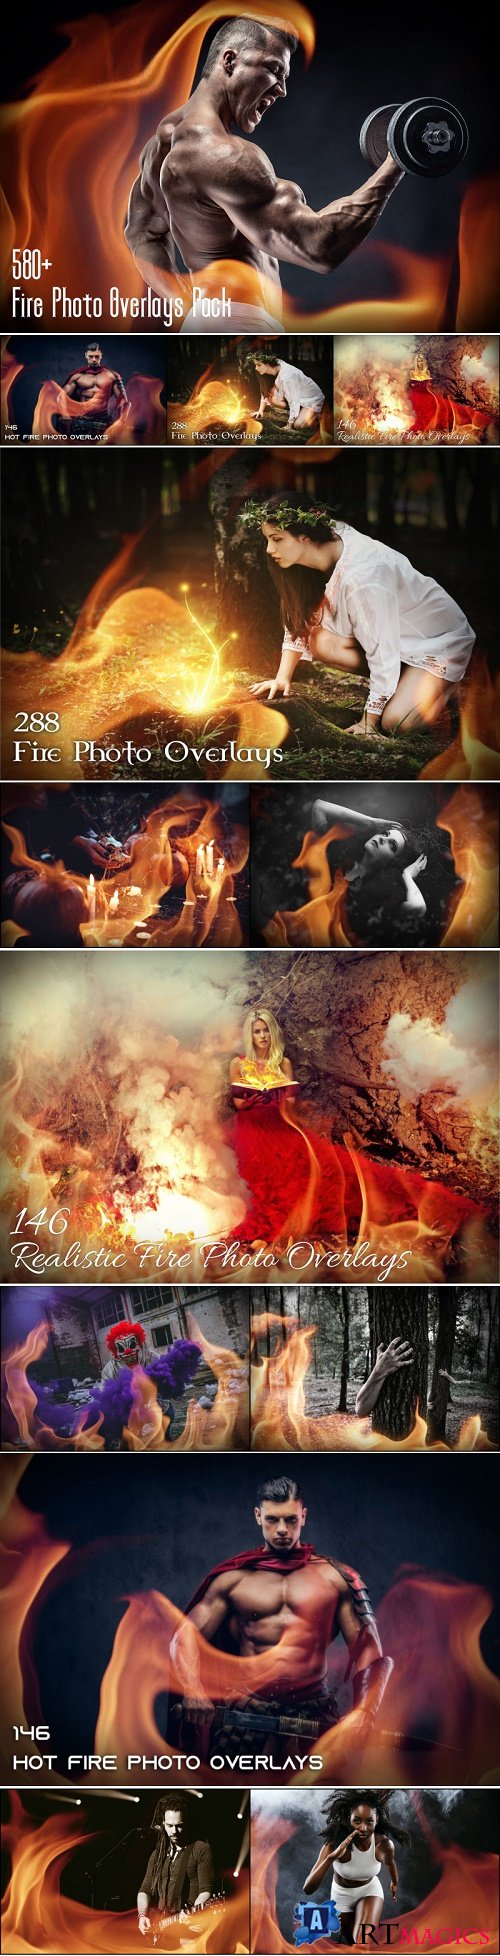 580+ Fire Photo Overlays Pack - 3584609